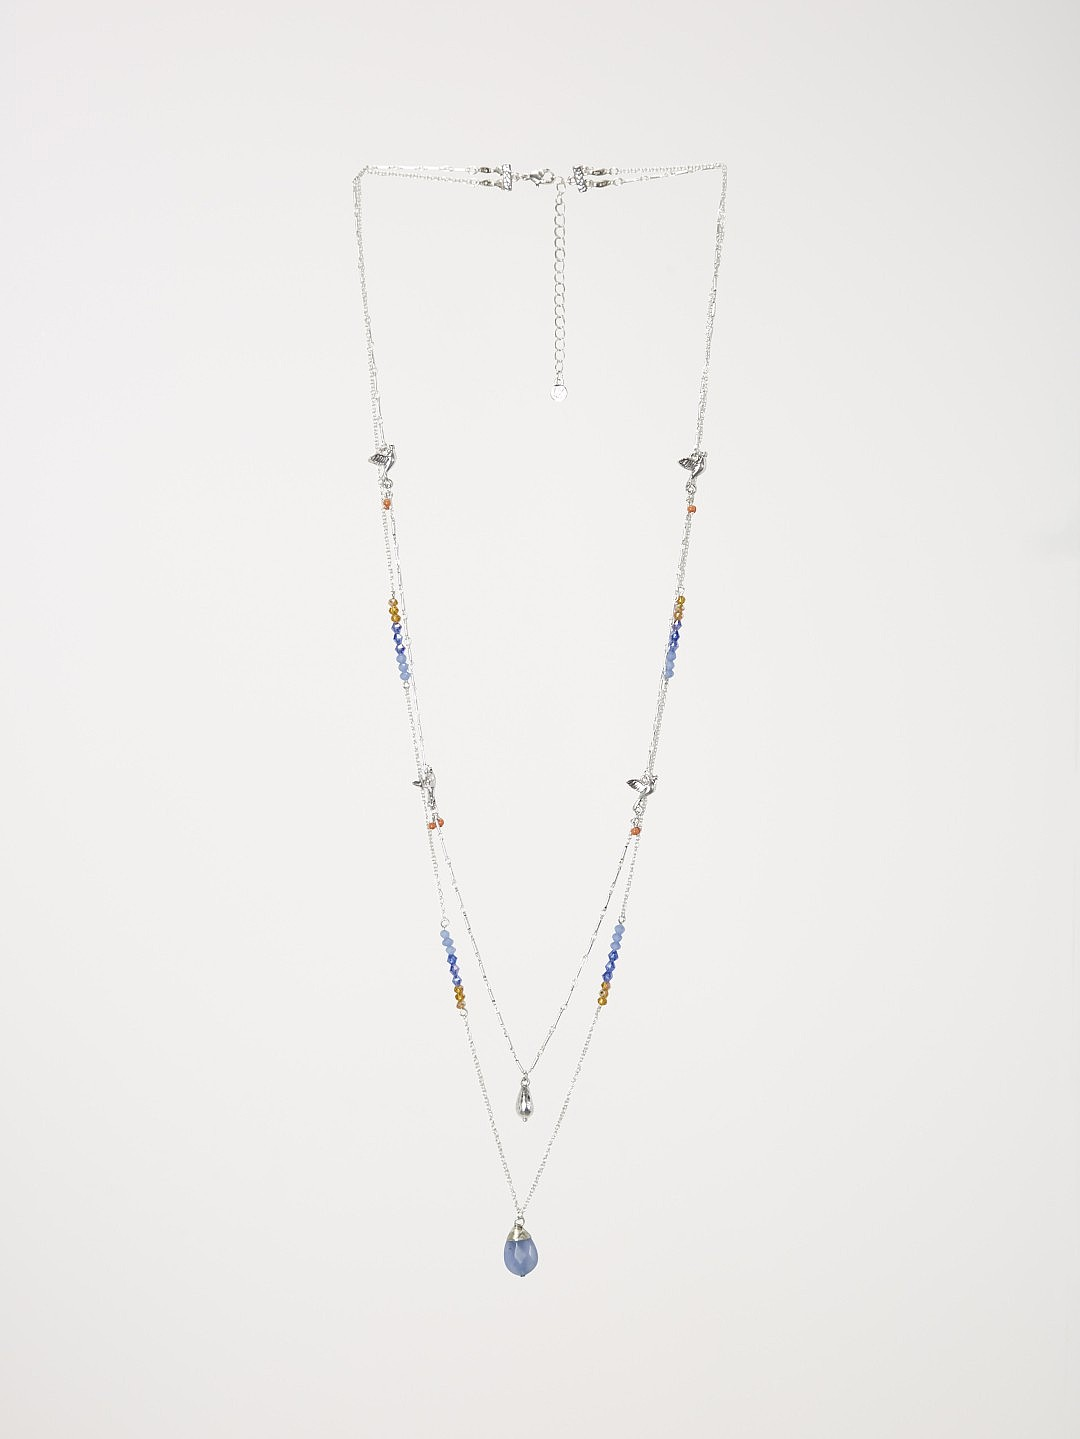 Dbl row nectar bead necklace